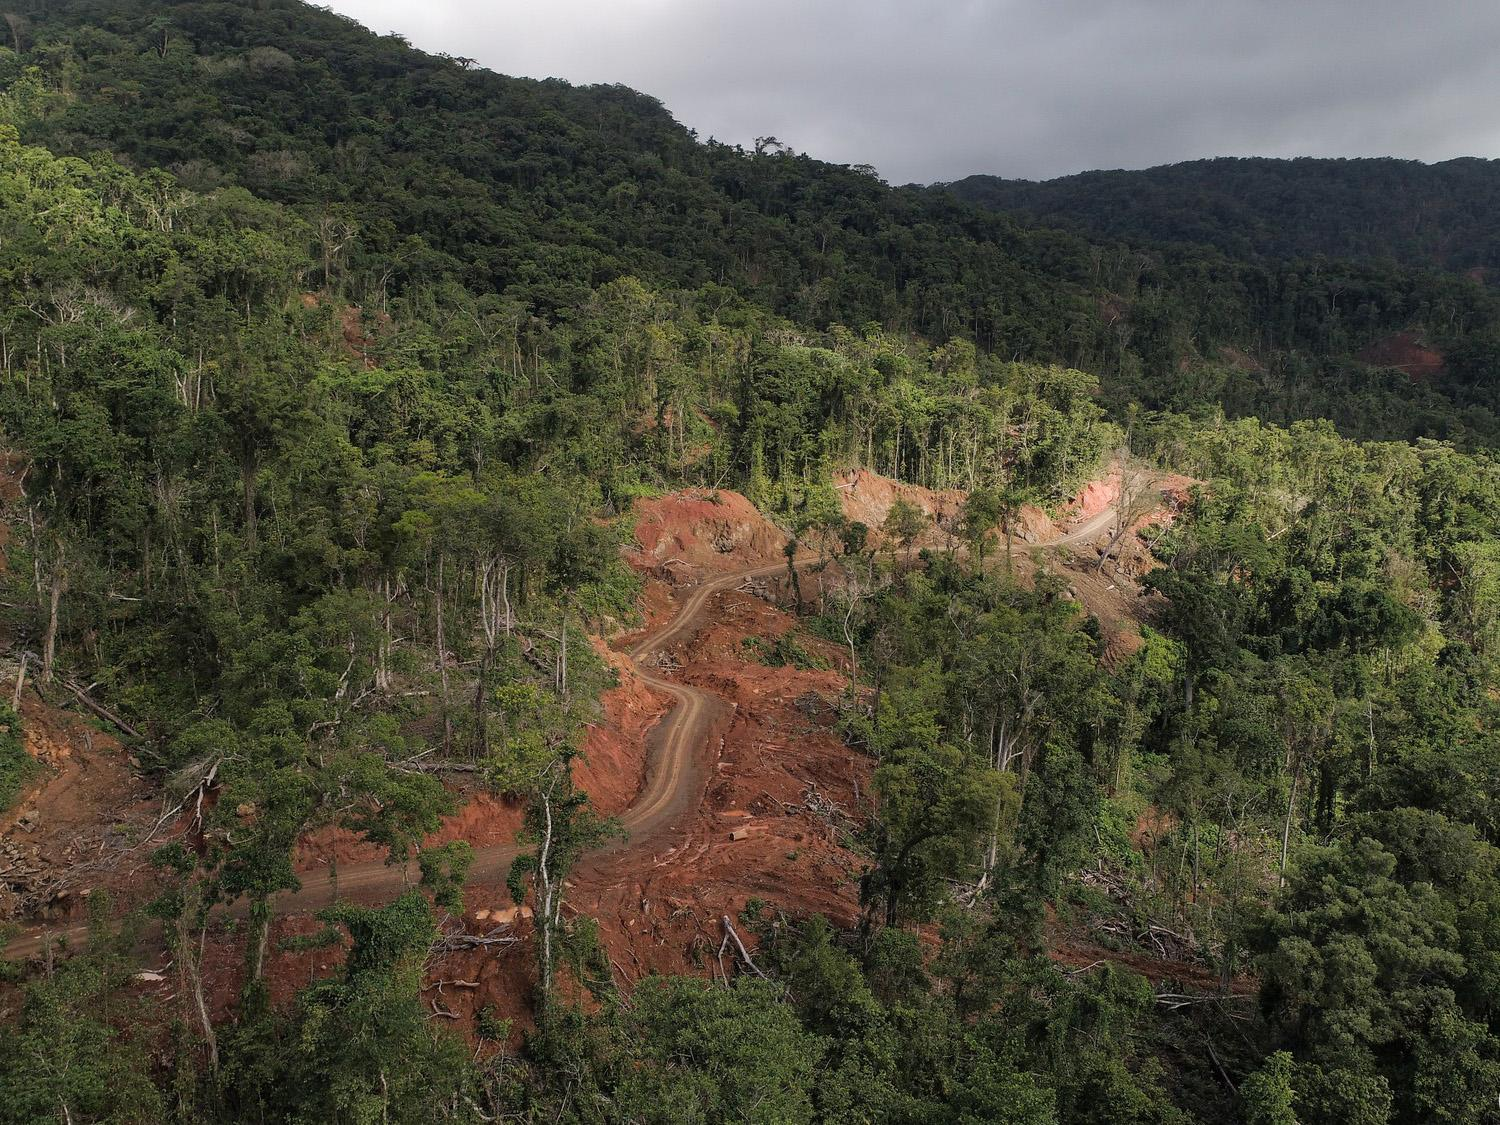 'Untouched' Pacific island forests could be destroyed within 20 years due to unsustainable logging